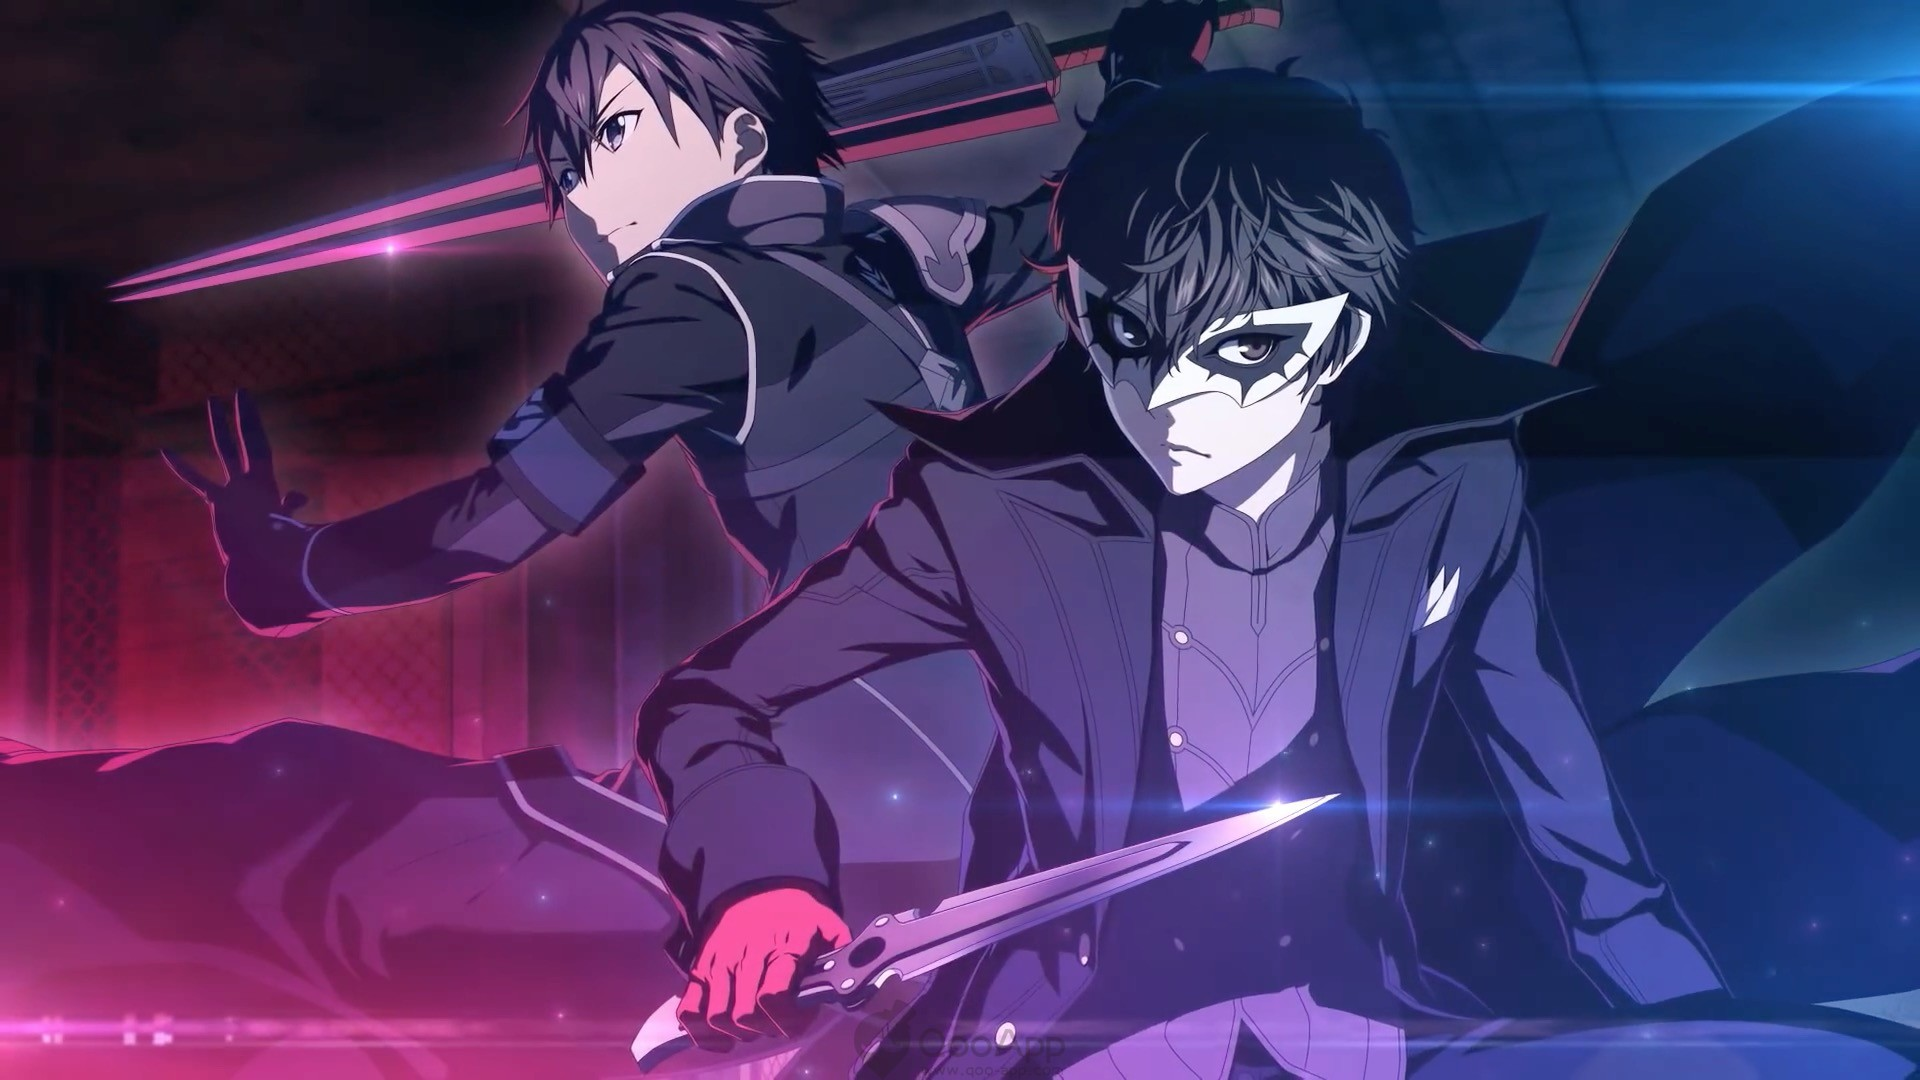 """""""SAO"""" X """"Persona 5 Royal"""" Collaboration Details Revealed!"""